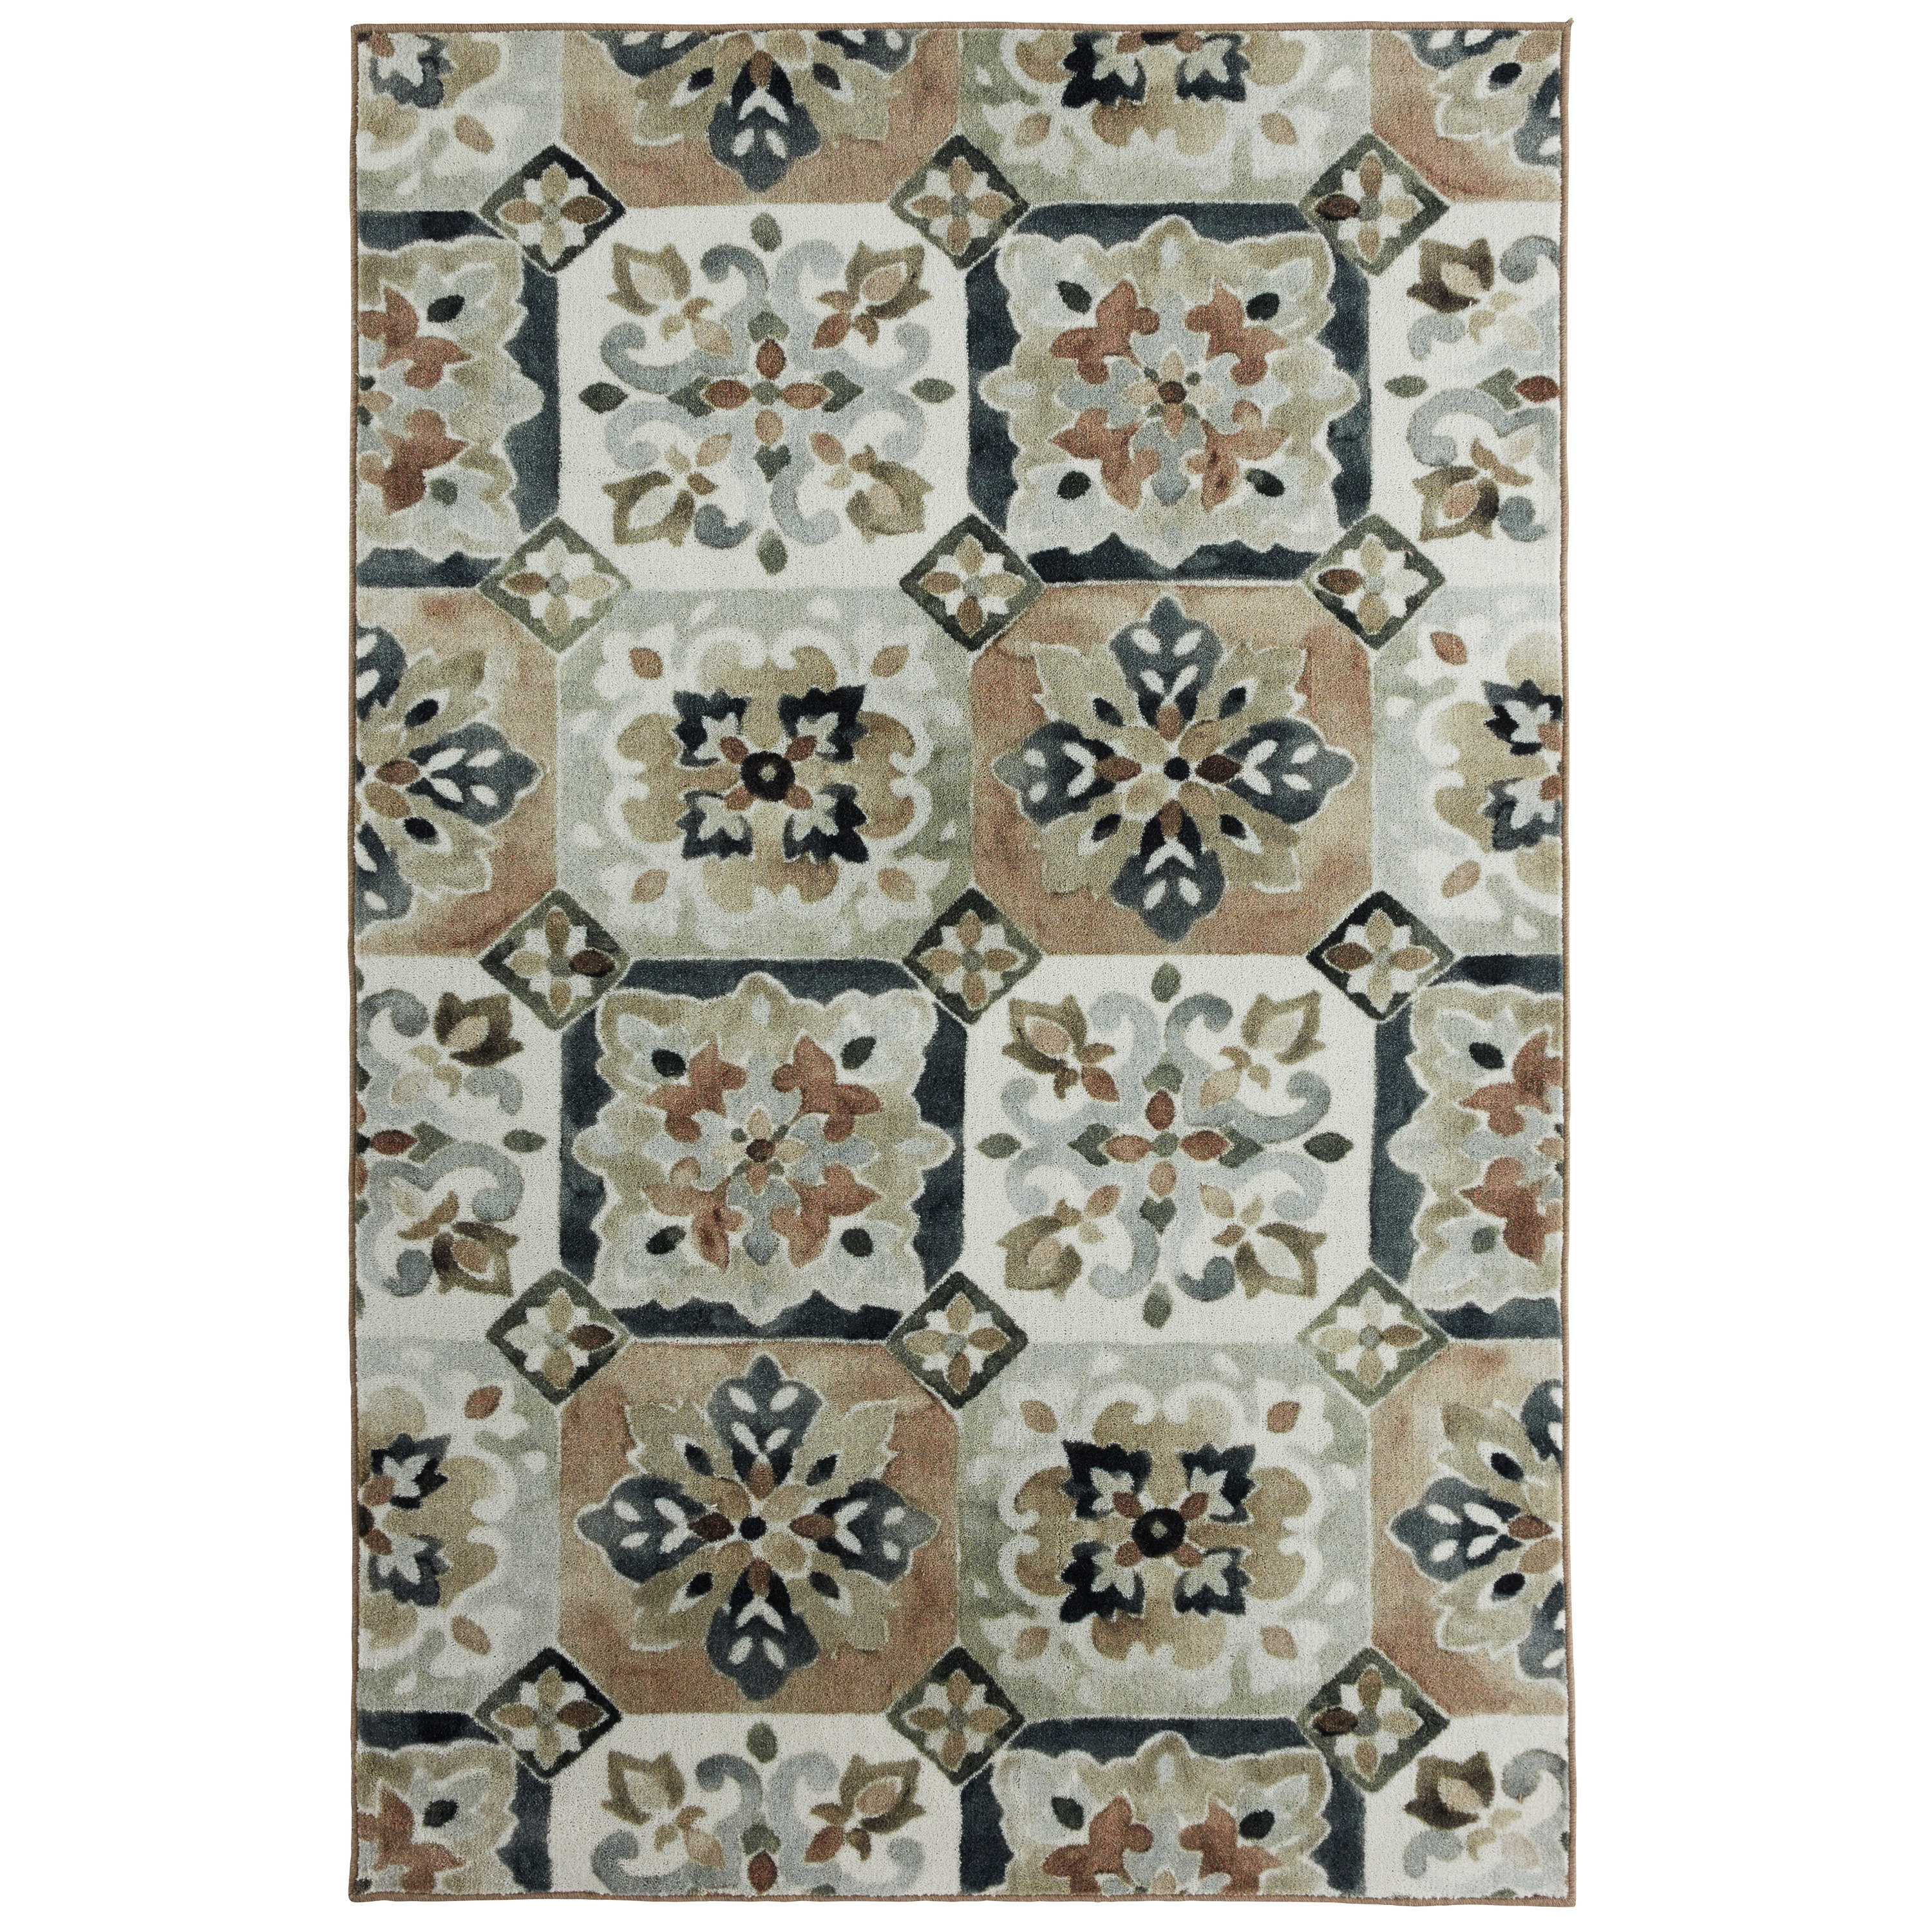 Mohawk Home  Prismatic Painted Tile Multicolor Moroccan Area Rug (8' x 10') - 8' x 10'